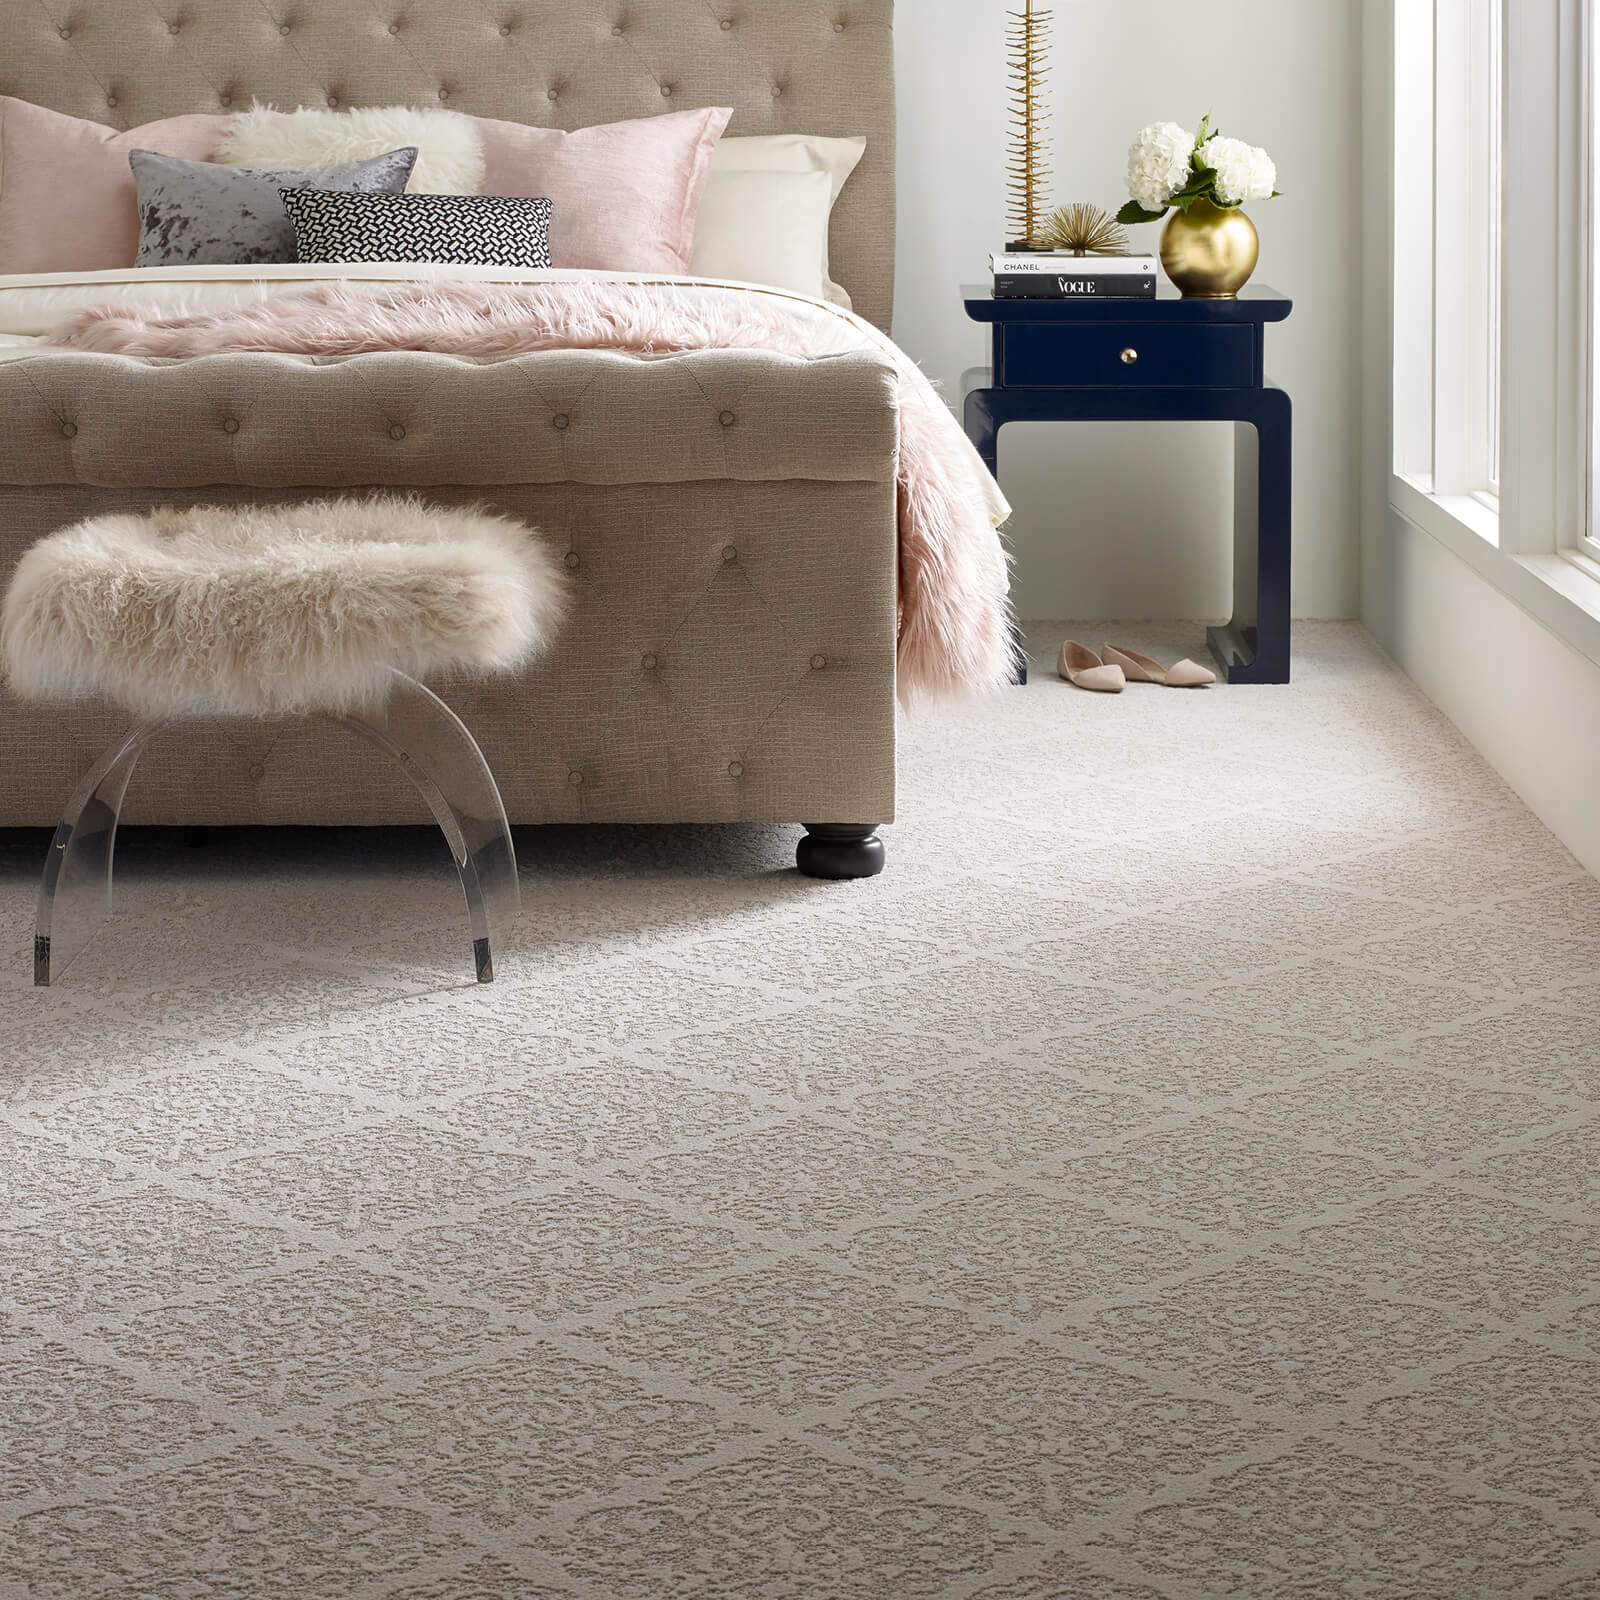 Chateau Fare Bedroom | Flooring by Wilson's Carpet Plus